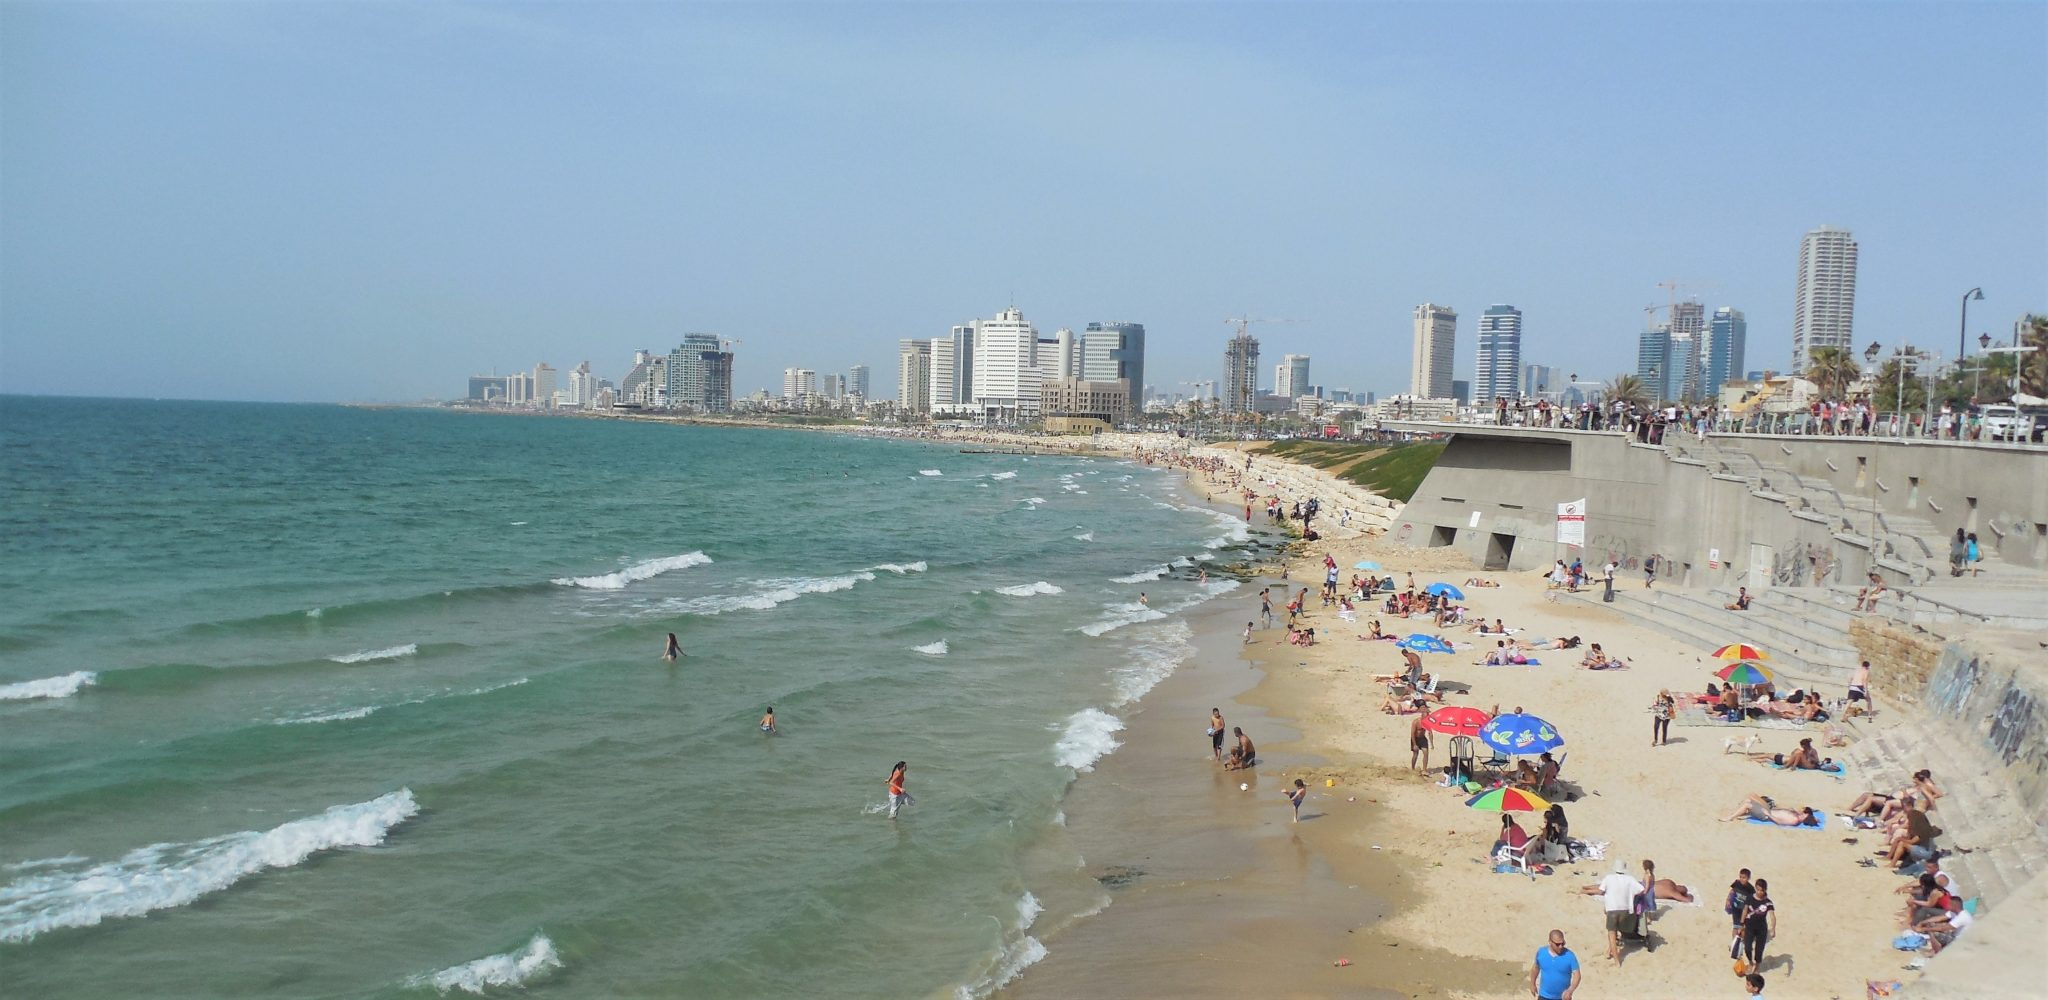 Beach on the Mediterranean Sea with Tel Aviv in the background